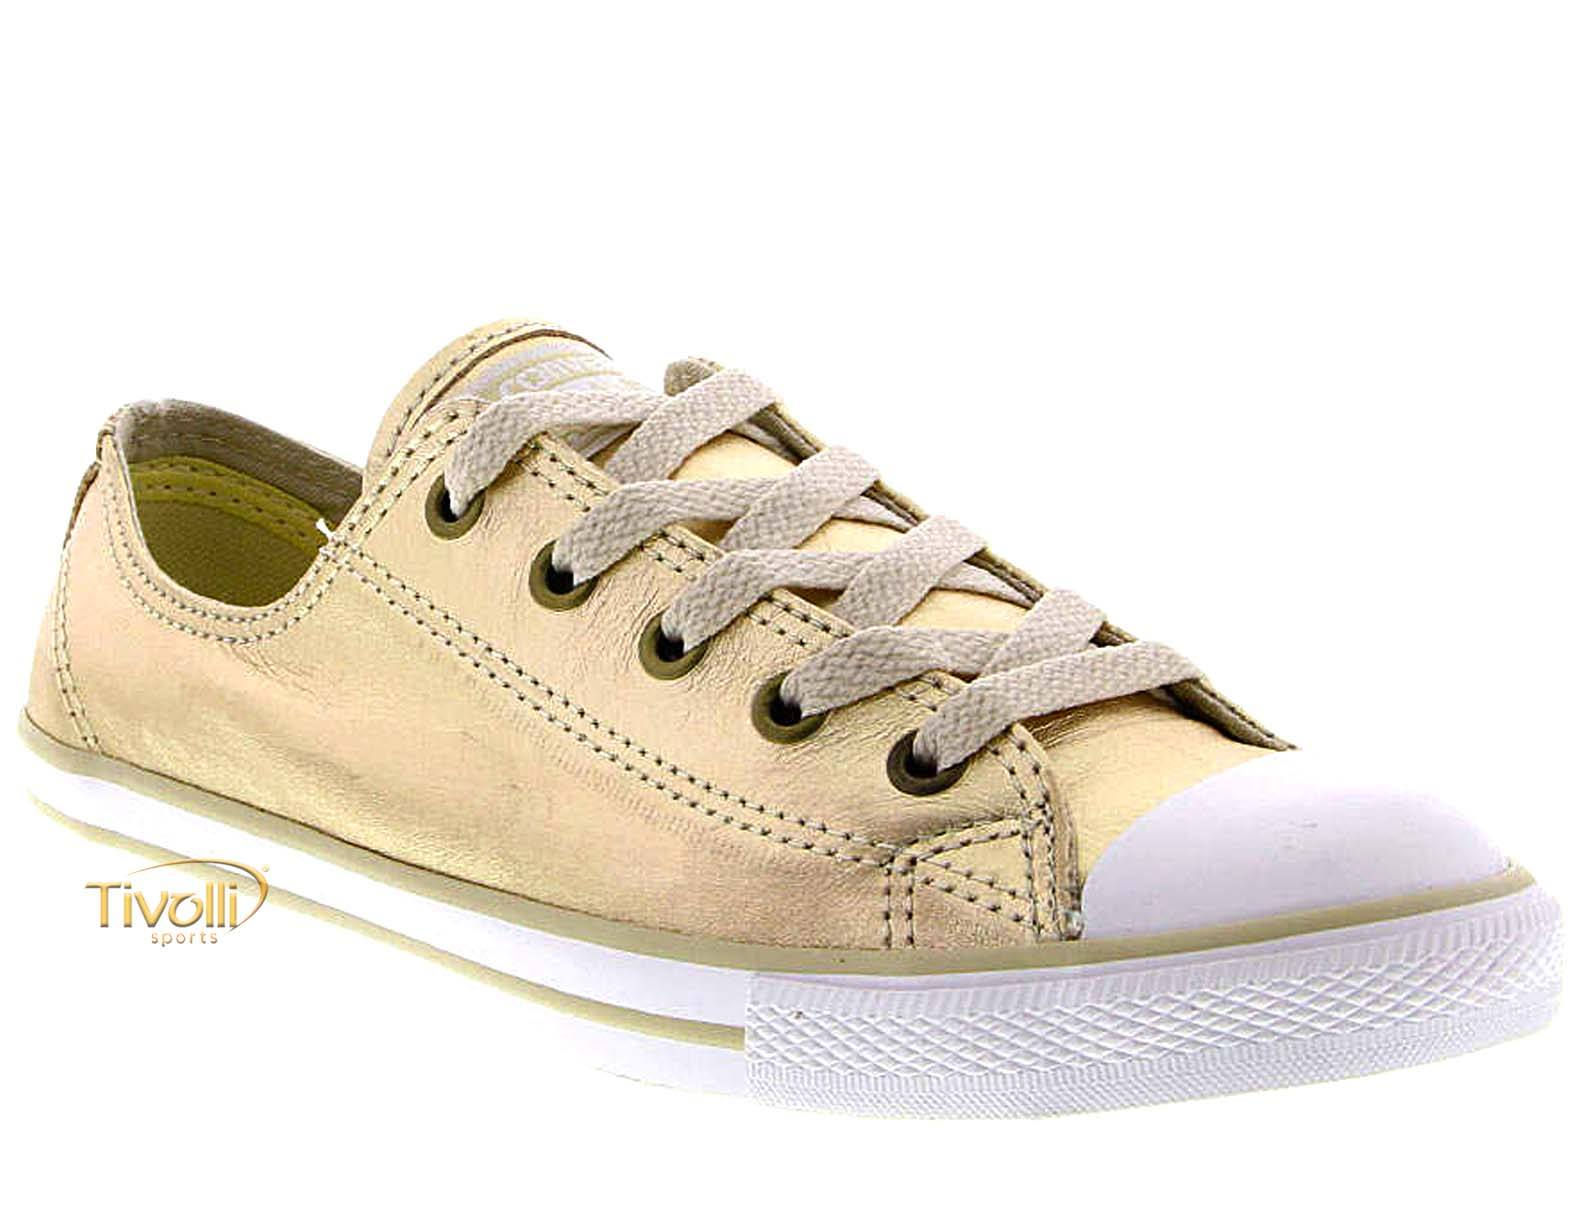 97ad80cf69d Tênis Converse All Star CT As Dainty Leather OX   Feminino Ouro